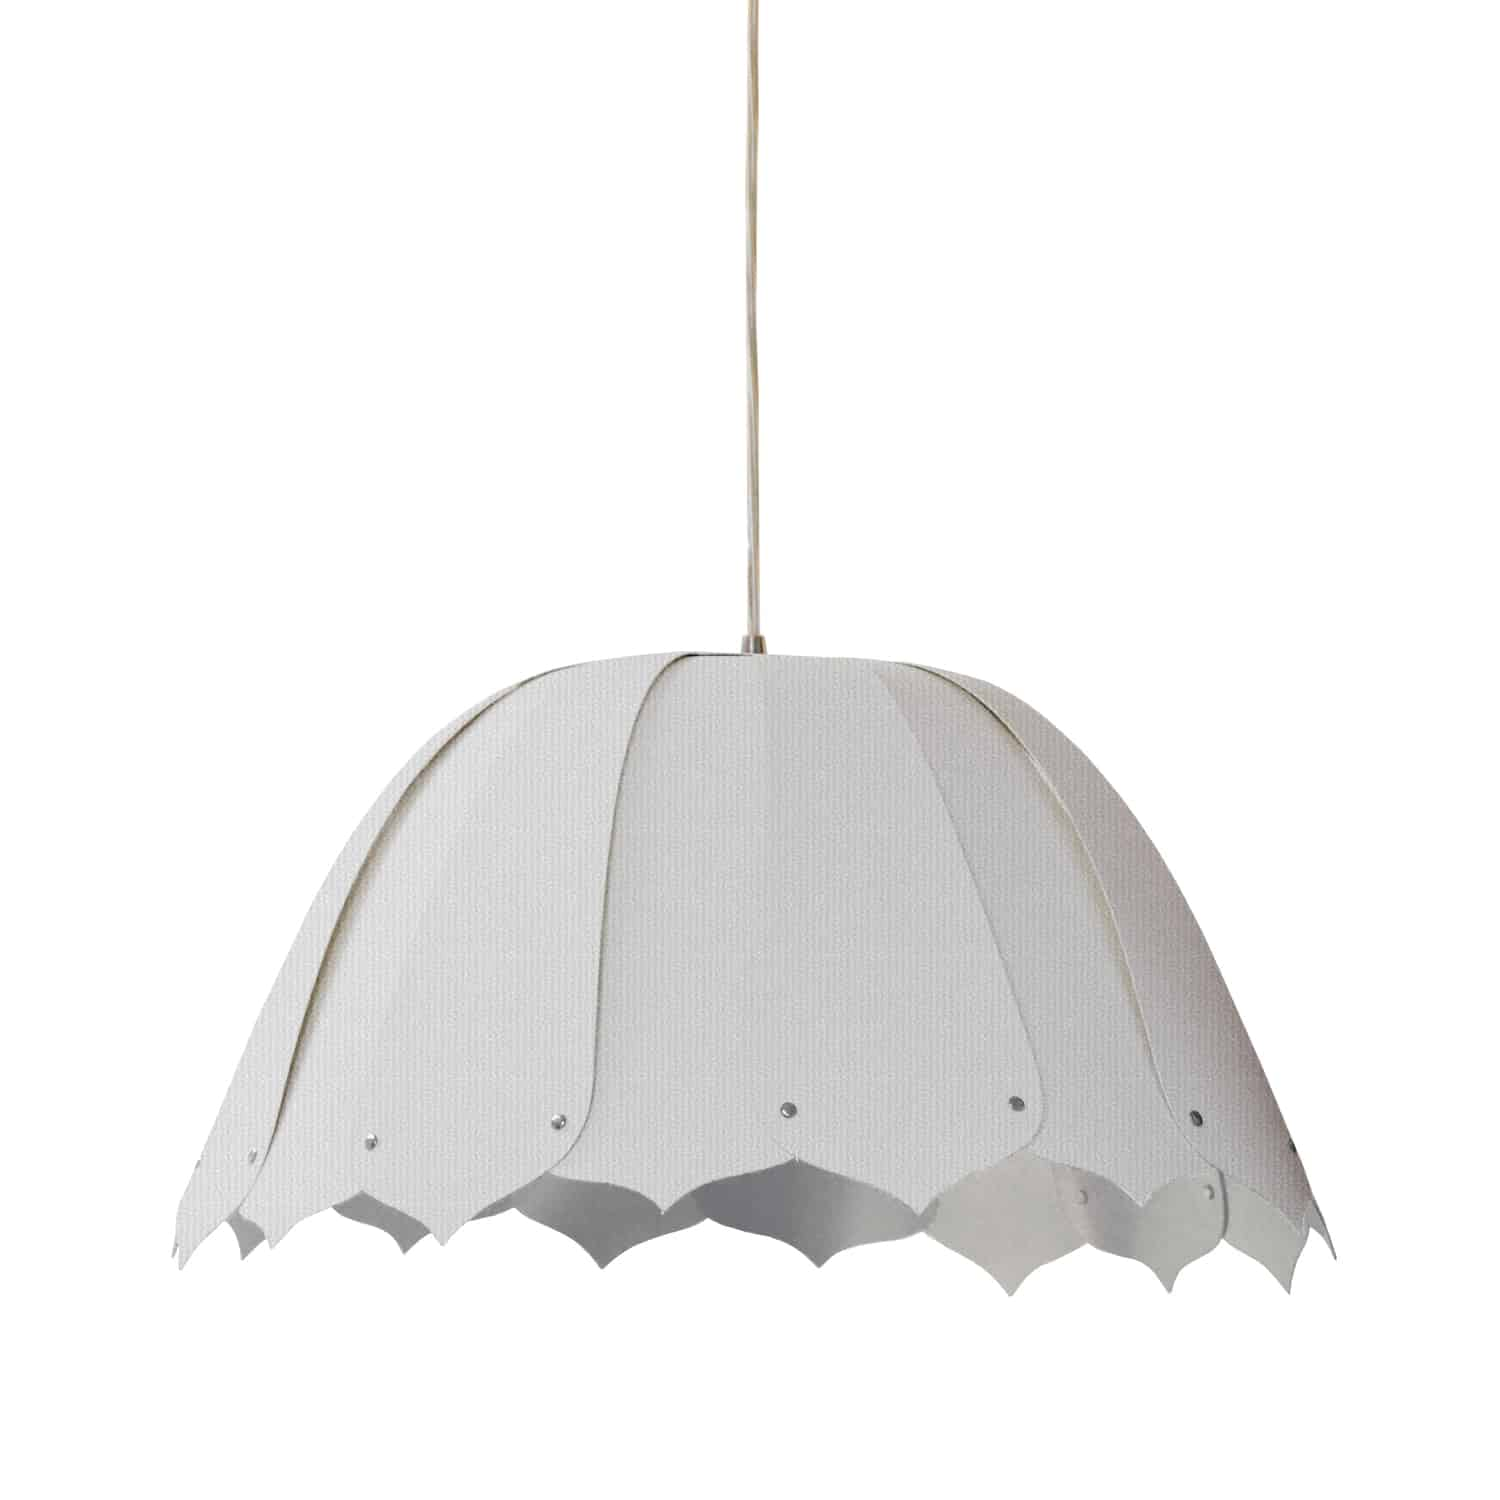 1 Light Noa Pendant Camelot White Polished Chrome